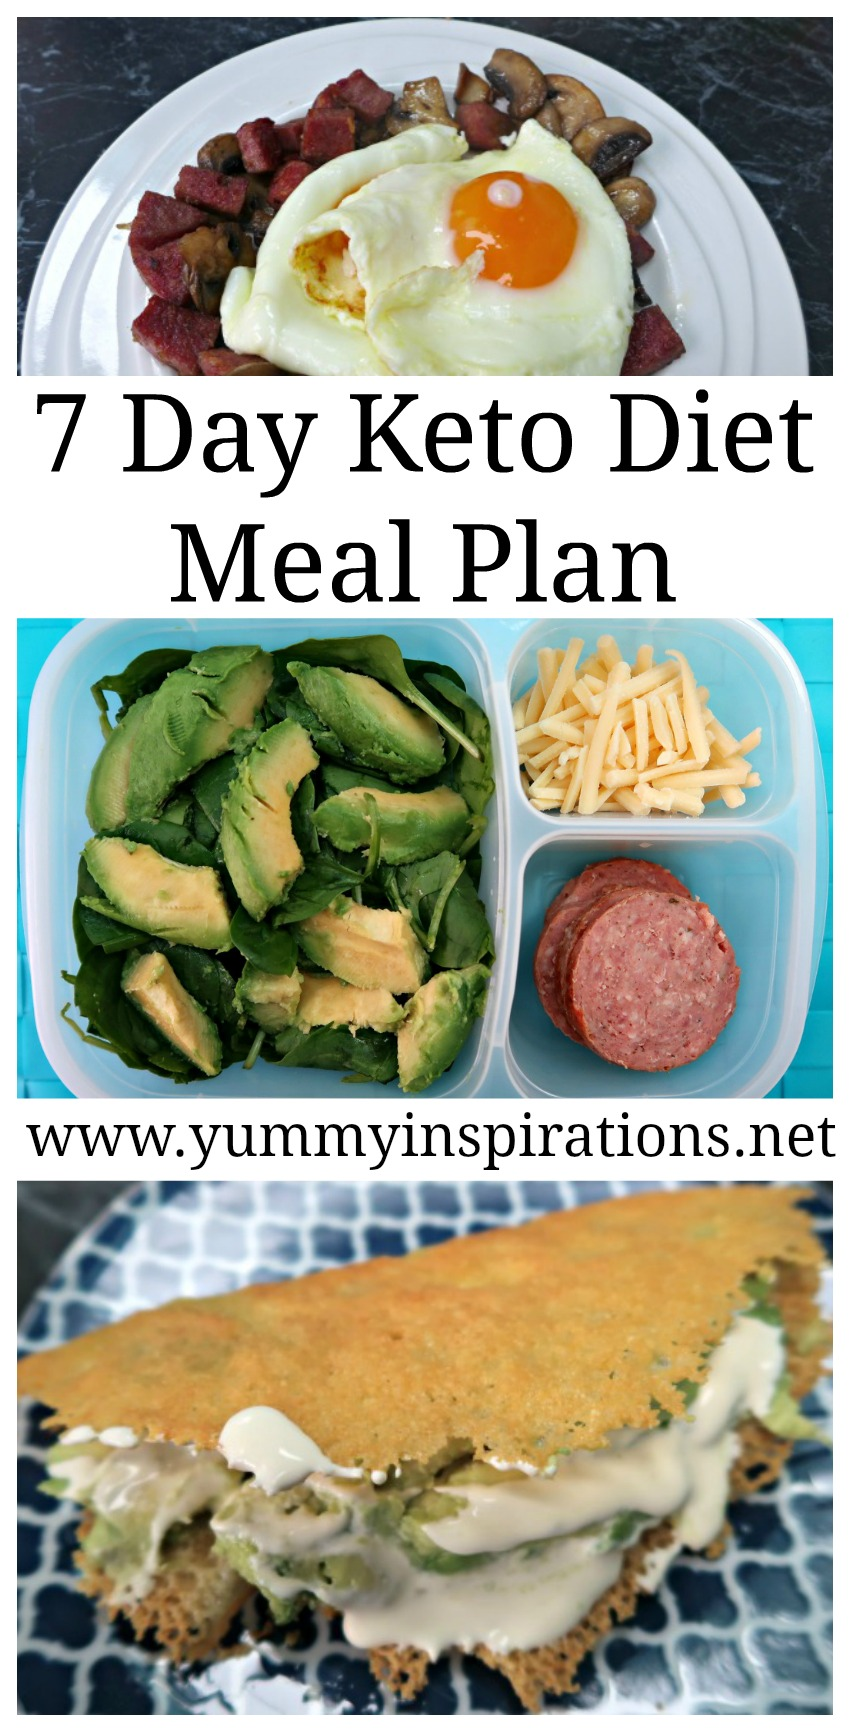 7-Day-Keto-Diet-Meal-Plan-For-Weight-Loss-Low-Carb-Ketogenic-Foods-and-sample-meal-examples-recipes-and-ideas-which-helped-me-lose-17kg37lbs..jpg